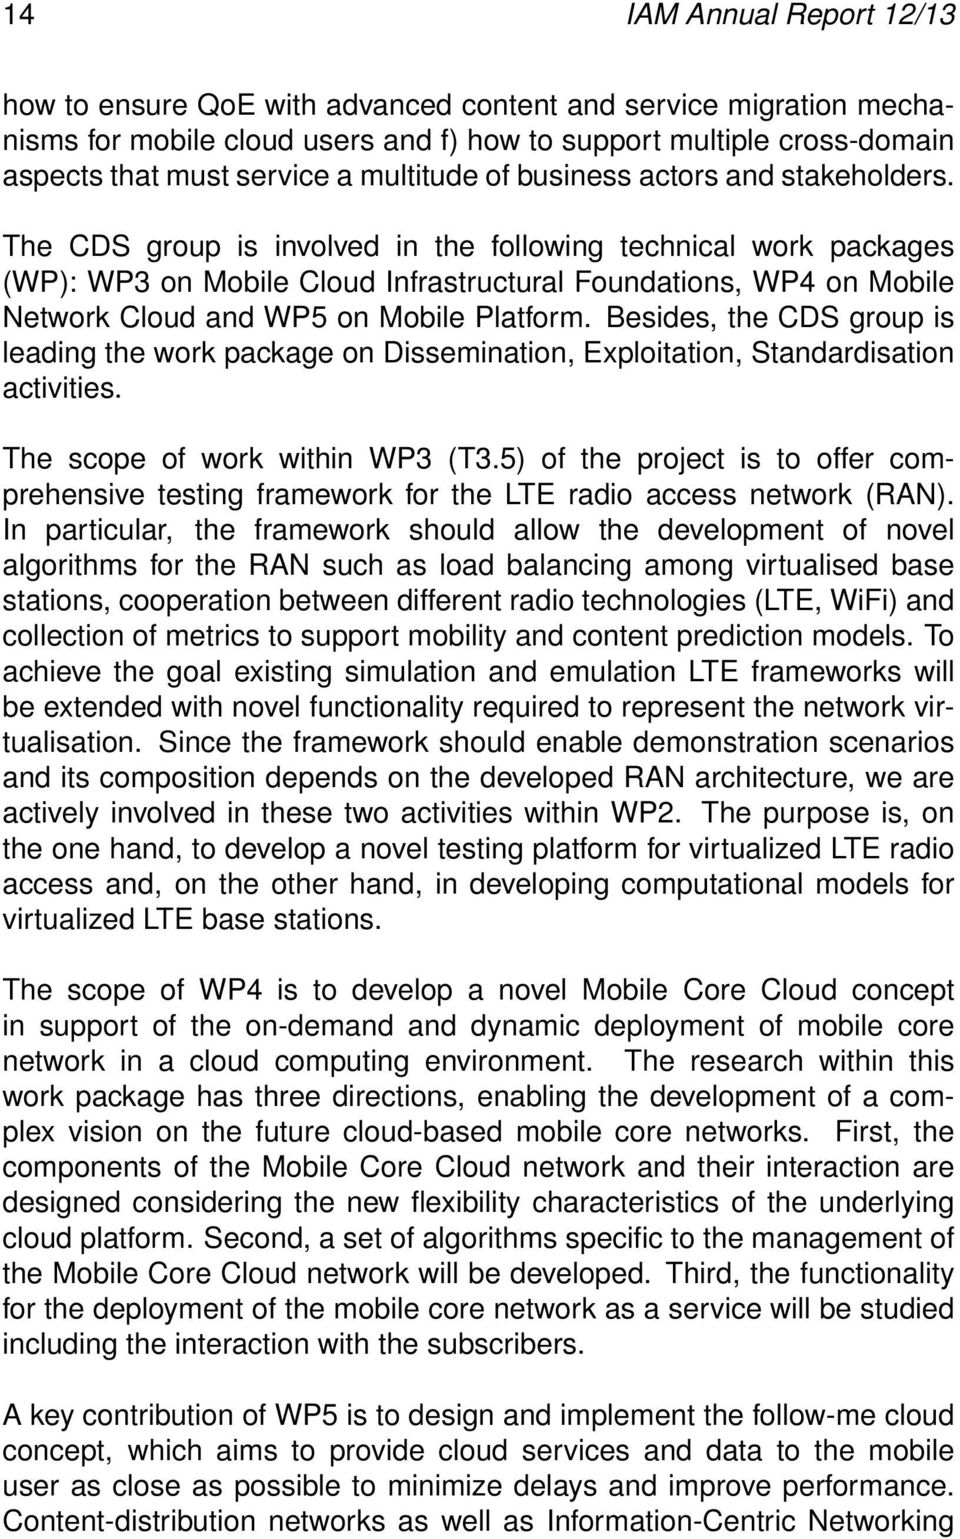 The CDS group is involved in the following technical work packages (WP): WP3 on Mobile Cloud Infrastructural Foundations, WP4 on Mobile Network Cloud and WP5 on Mobile Platform.